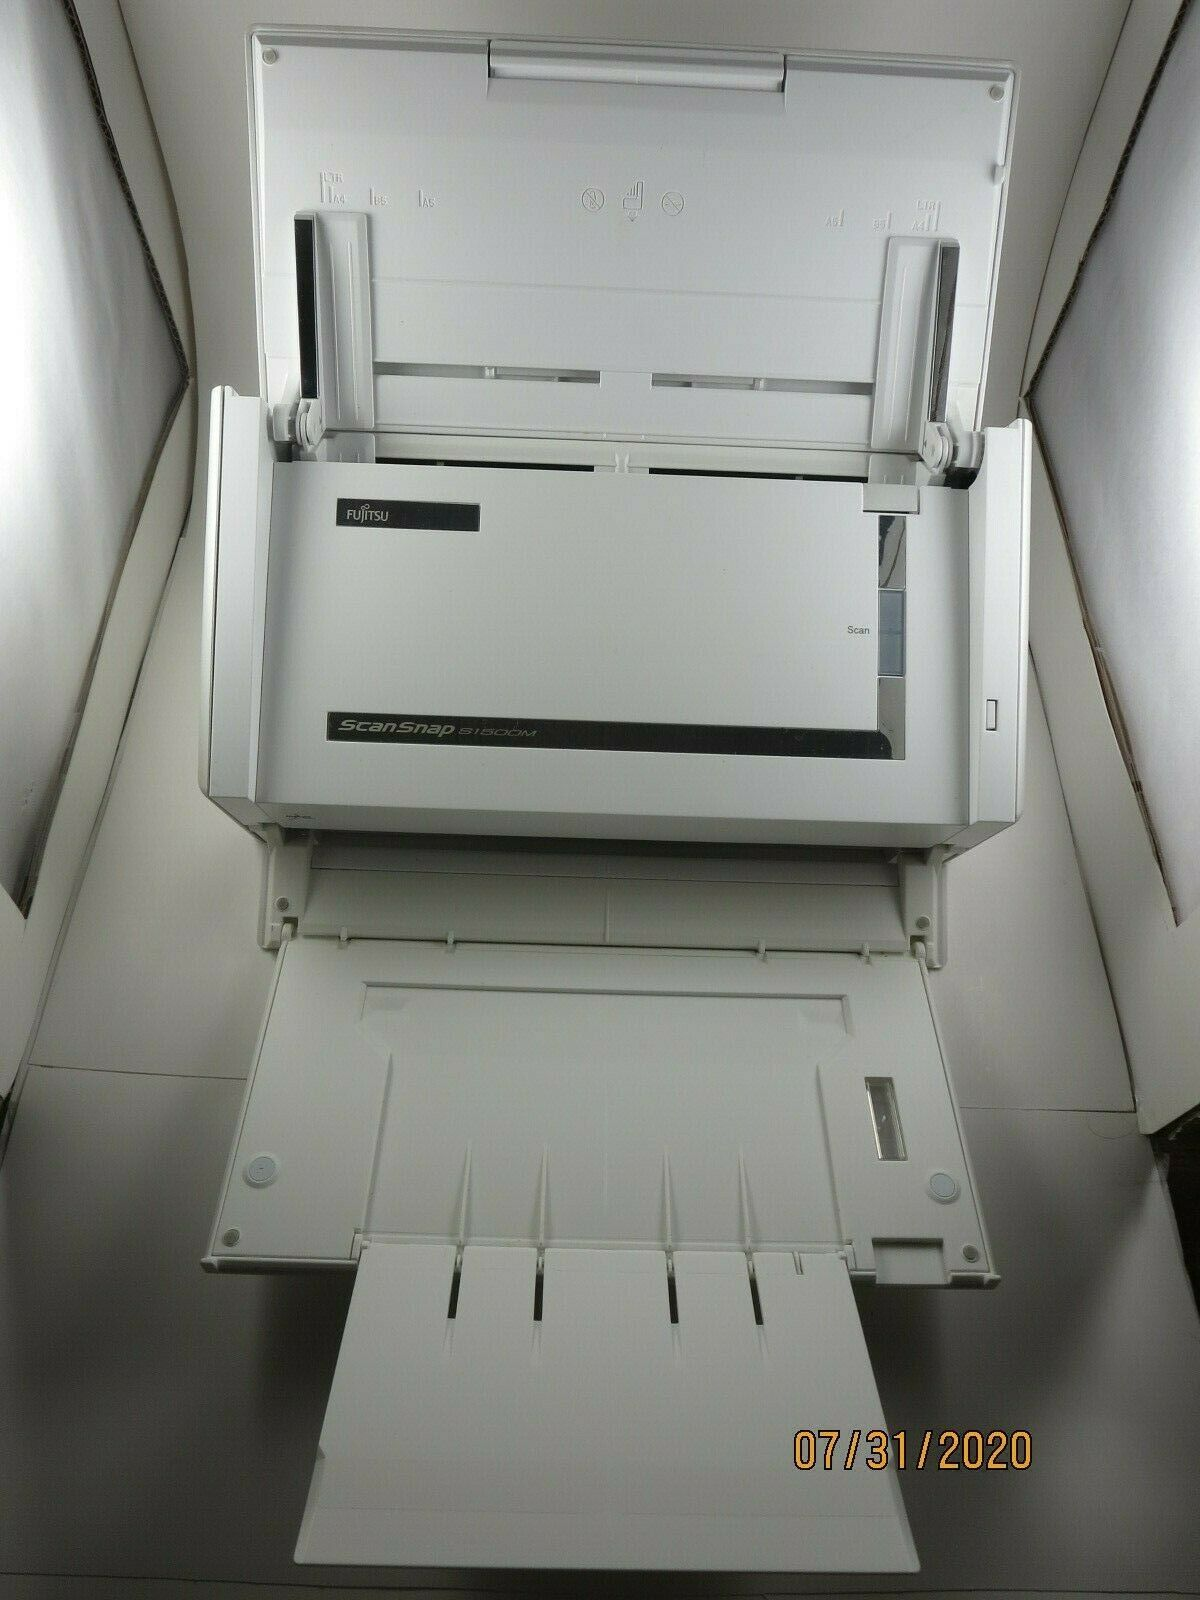 Fujitsu ScanSnap S1500M Document Scanner Fully Tested - $52.00